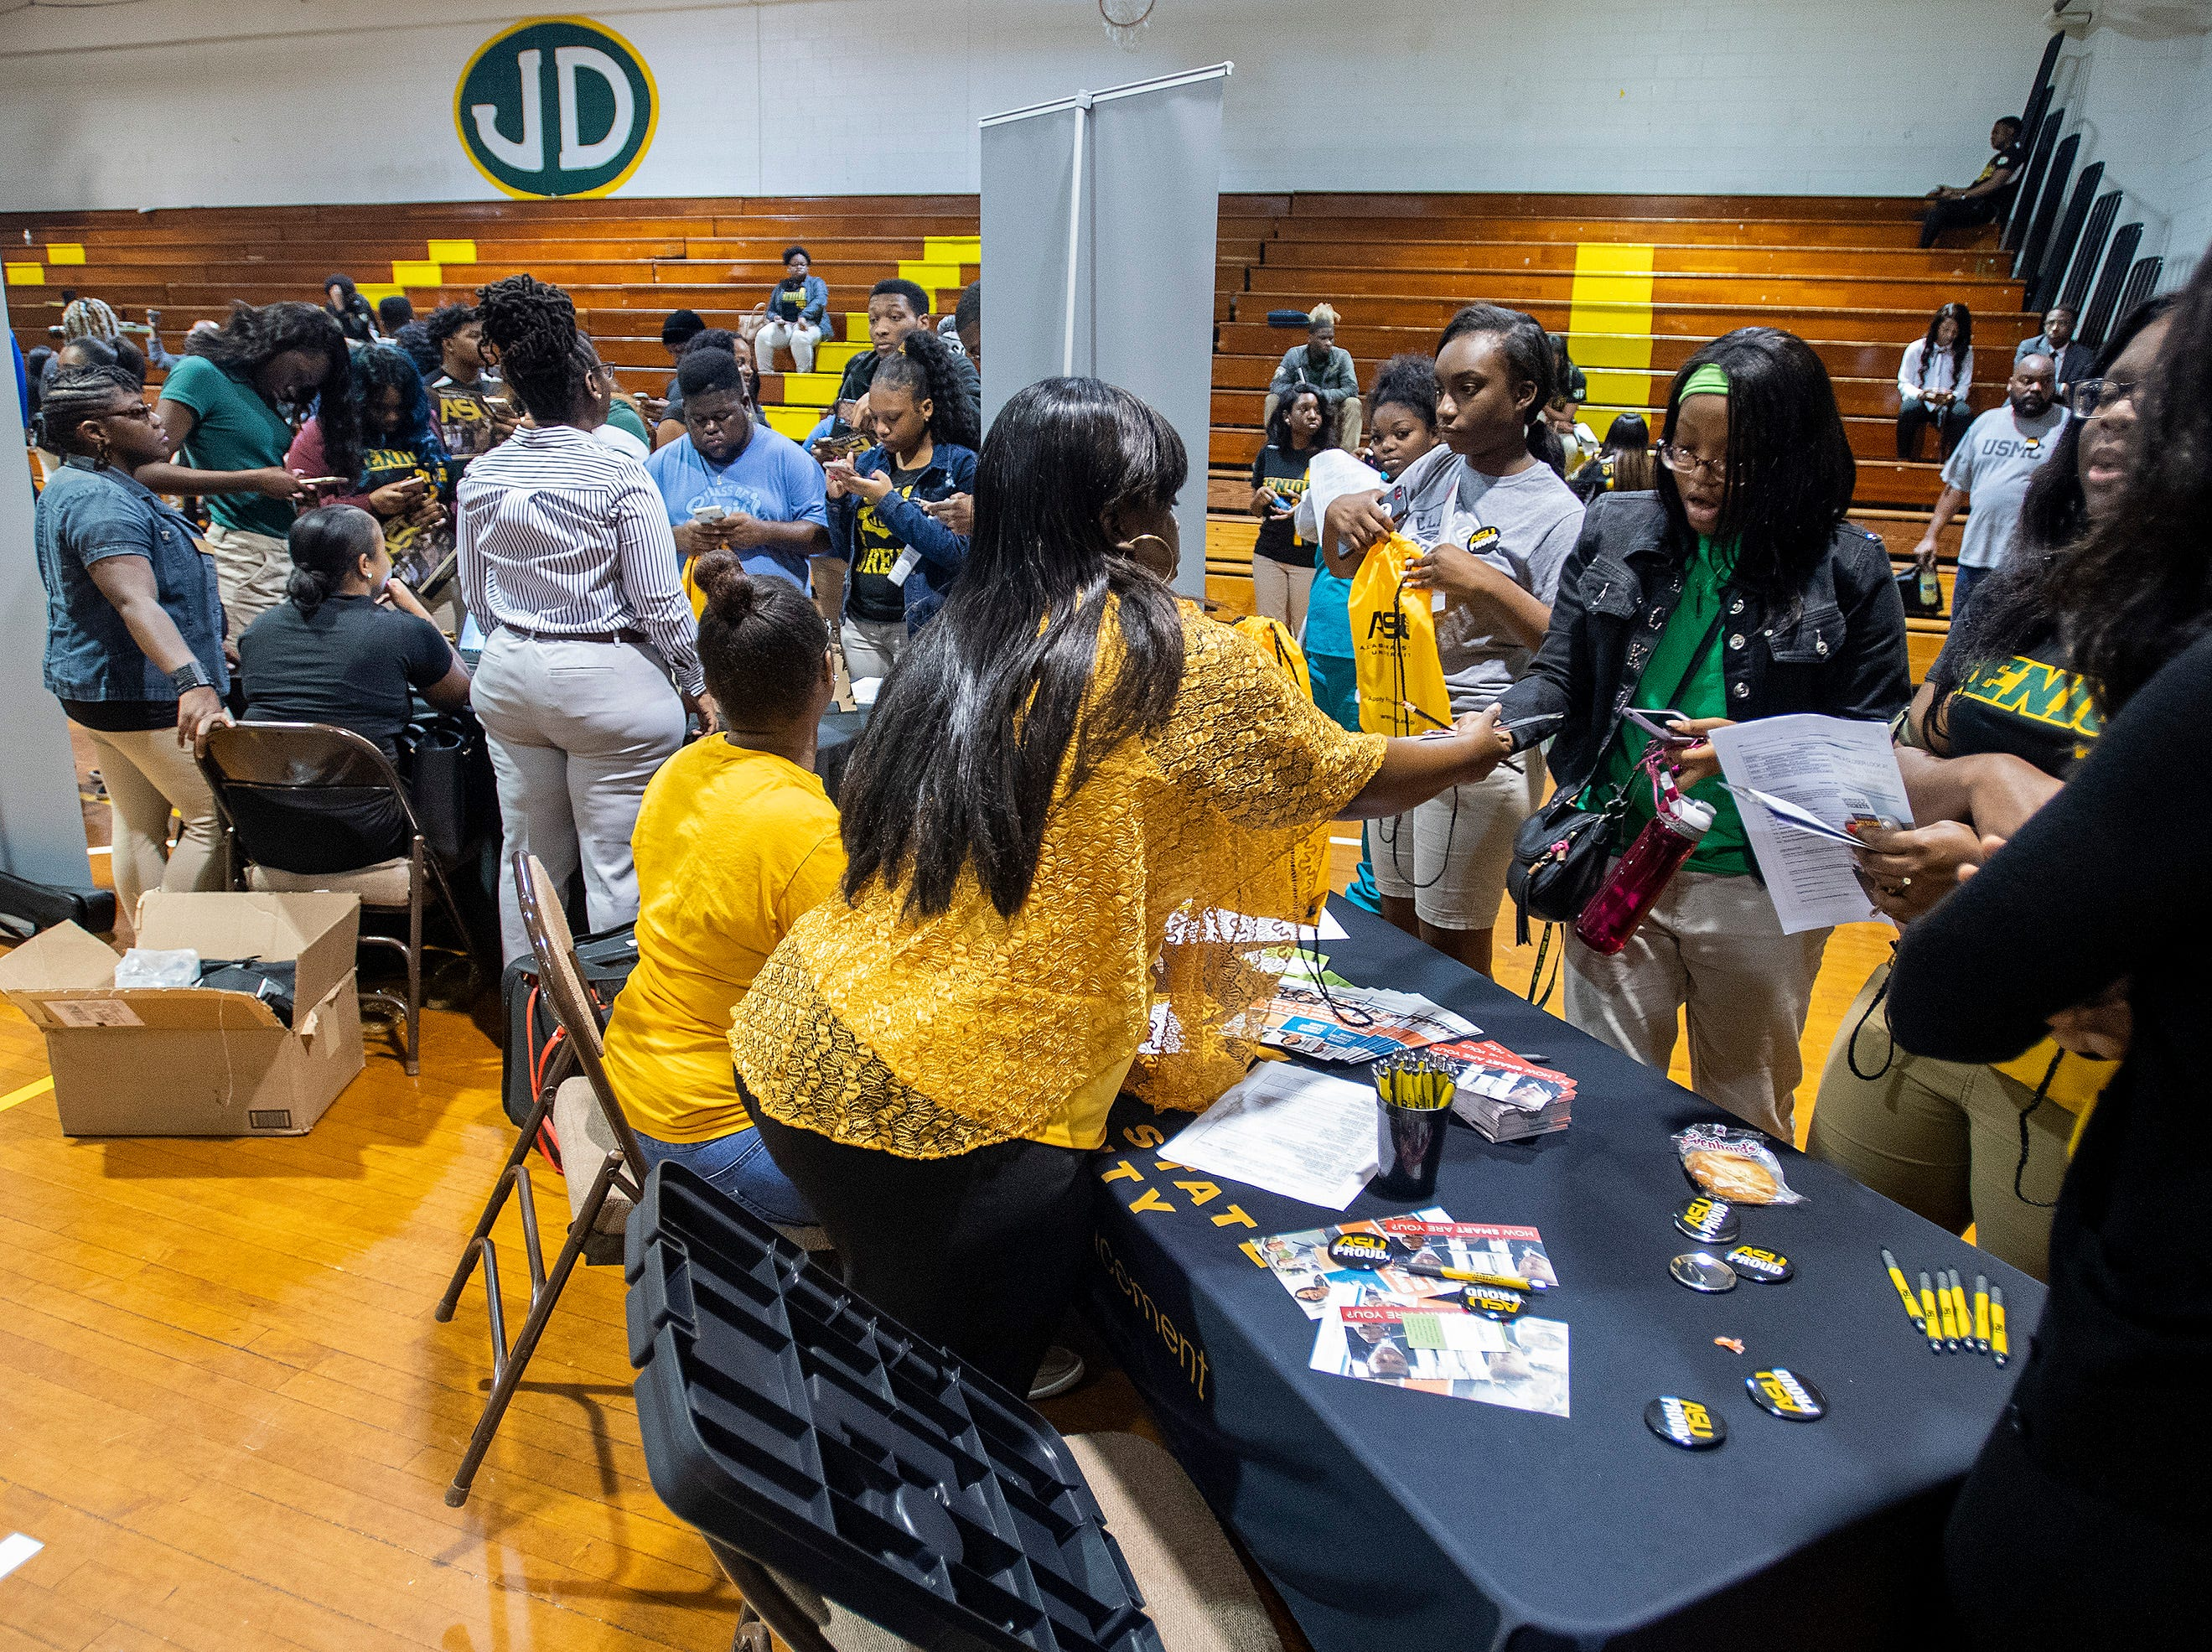 The Alabama State University President's Tour visits Jeff Davis High School in Montgomery, Ala., on Friday April 12, 2019.